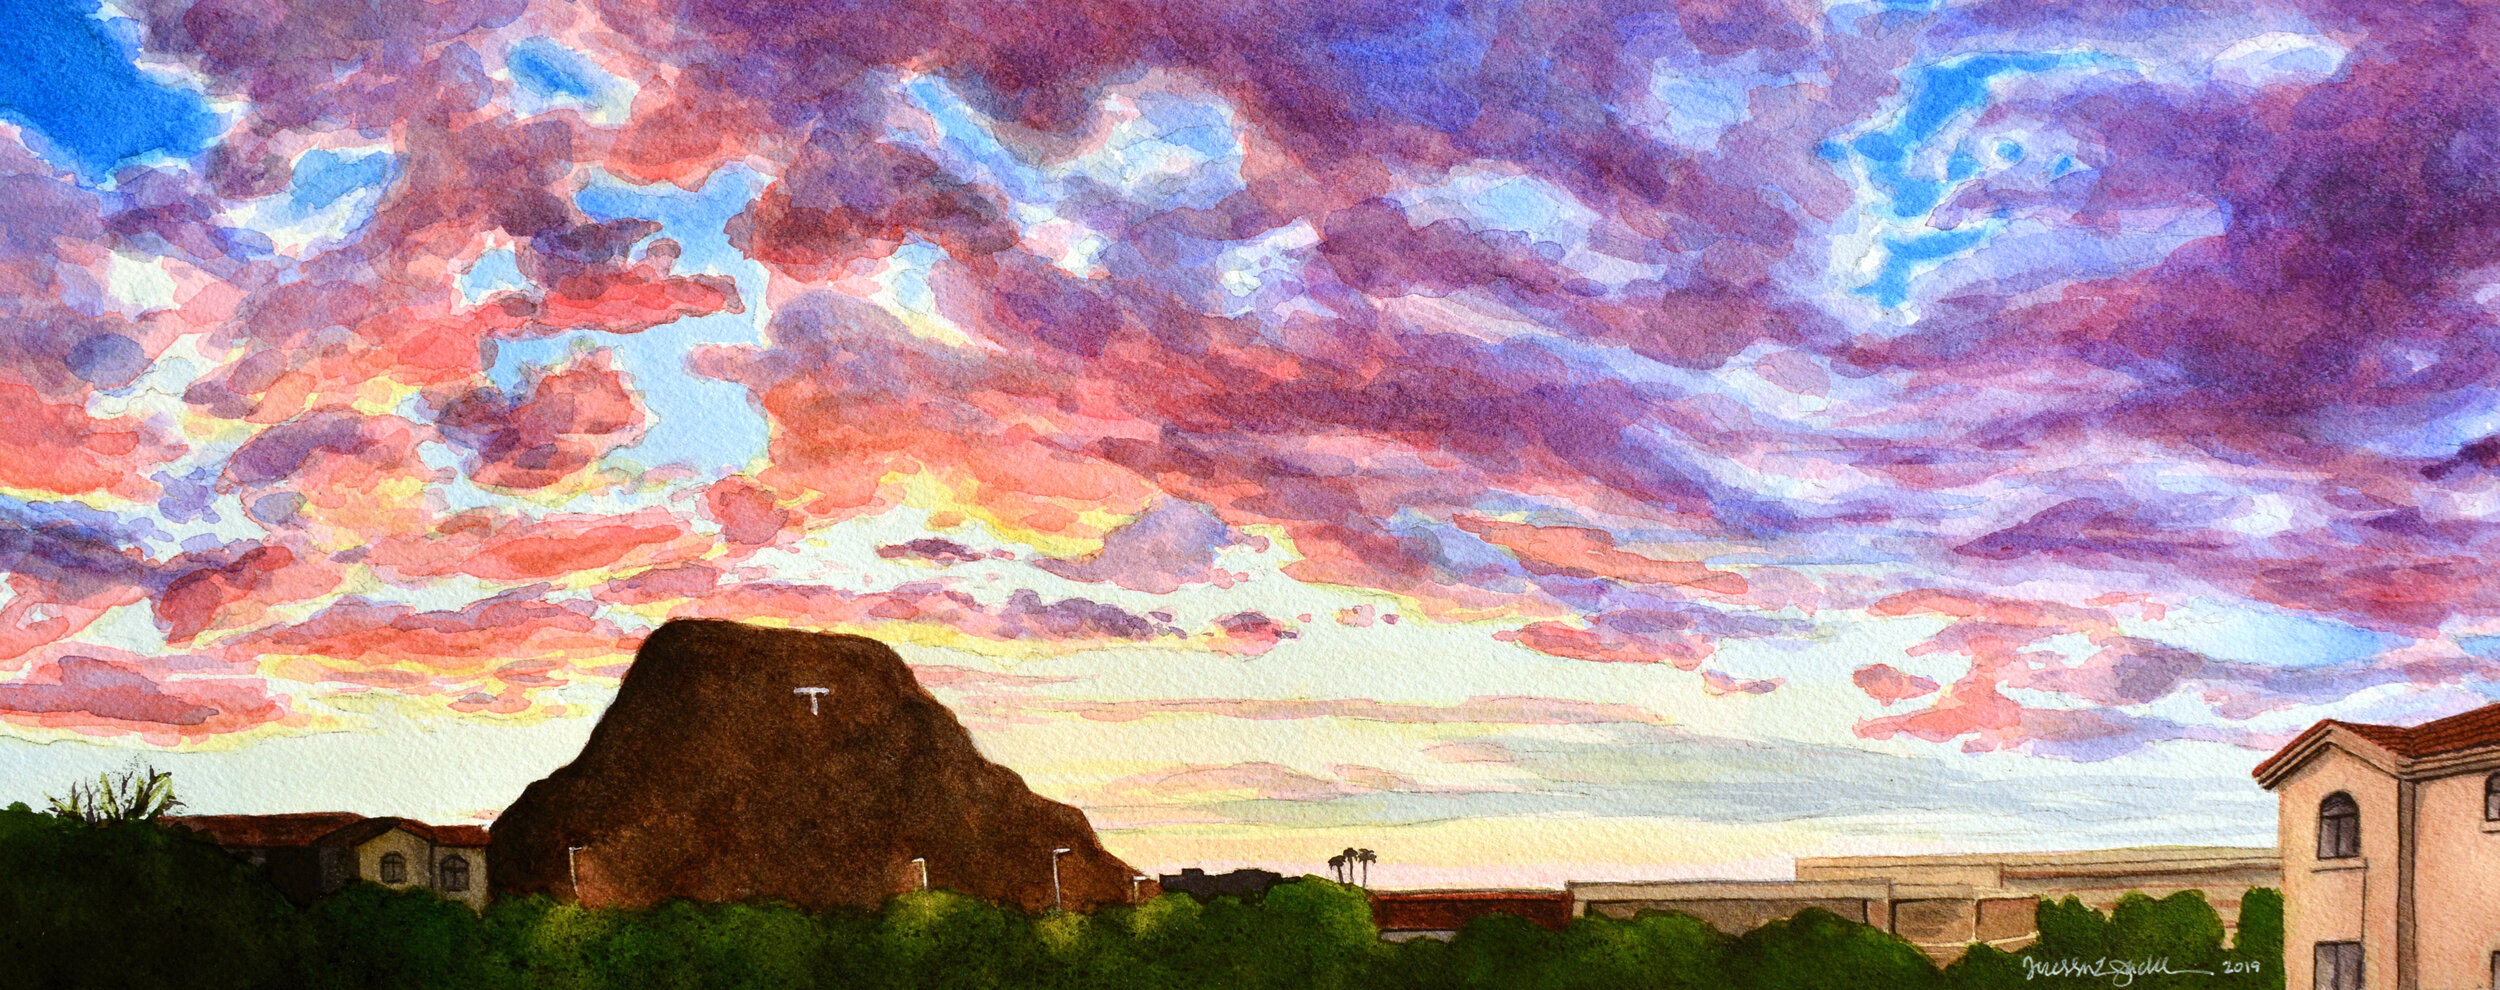 """""""T View"""" 20x8"""", Watercolor on 140 lb. Arches cold press watercolor paper This piece is on hold for upcoming exhibition."""